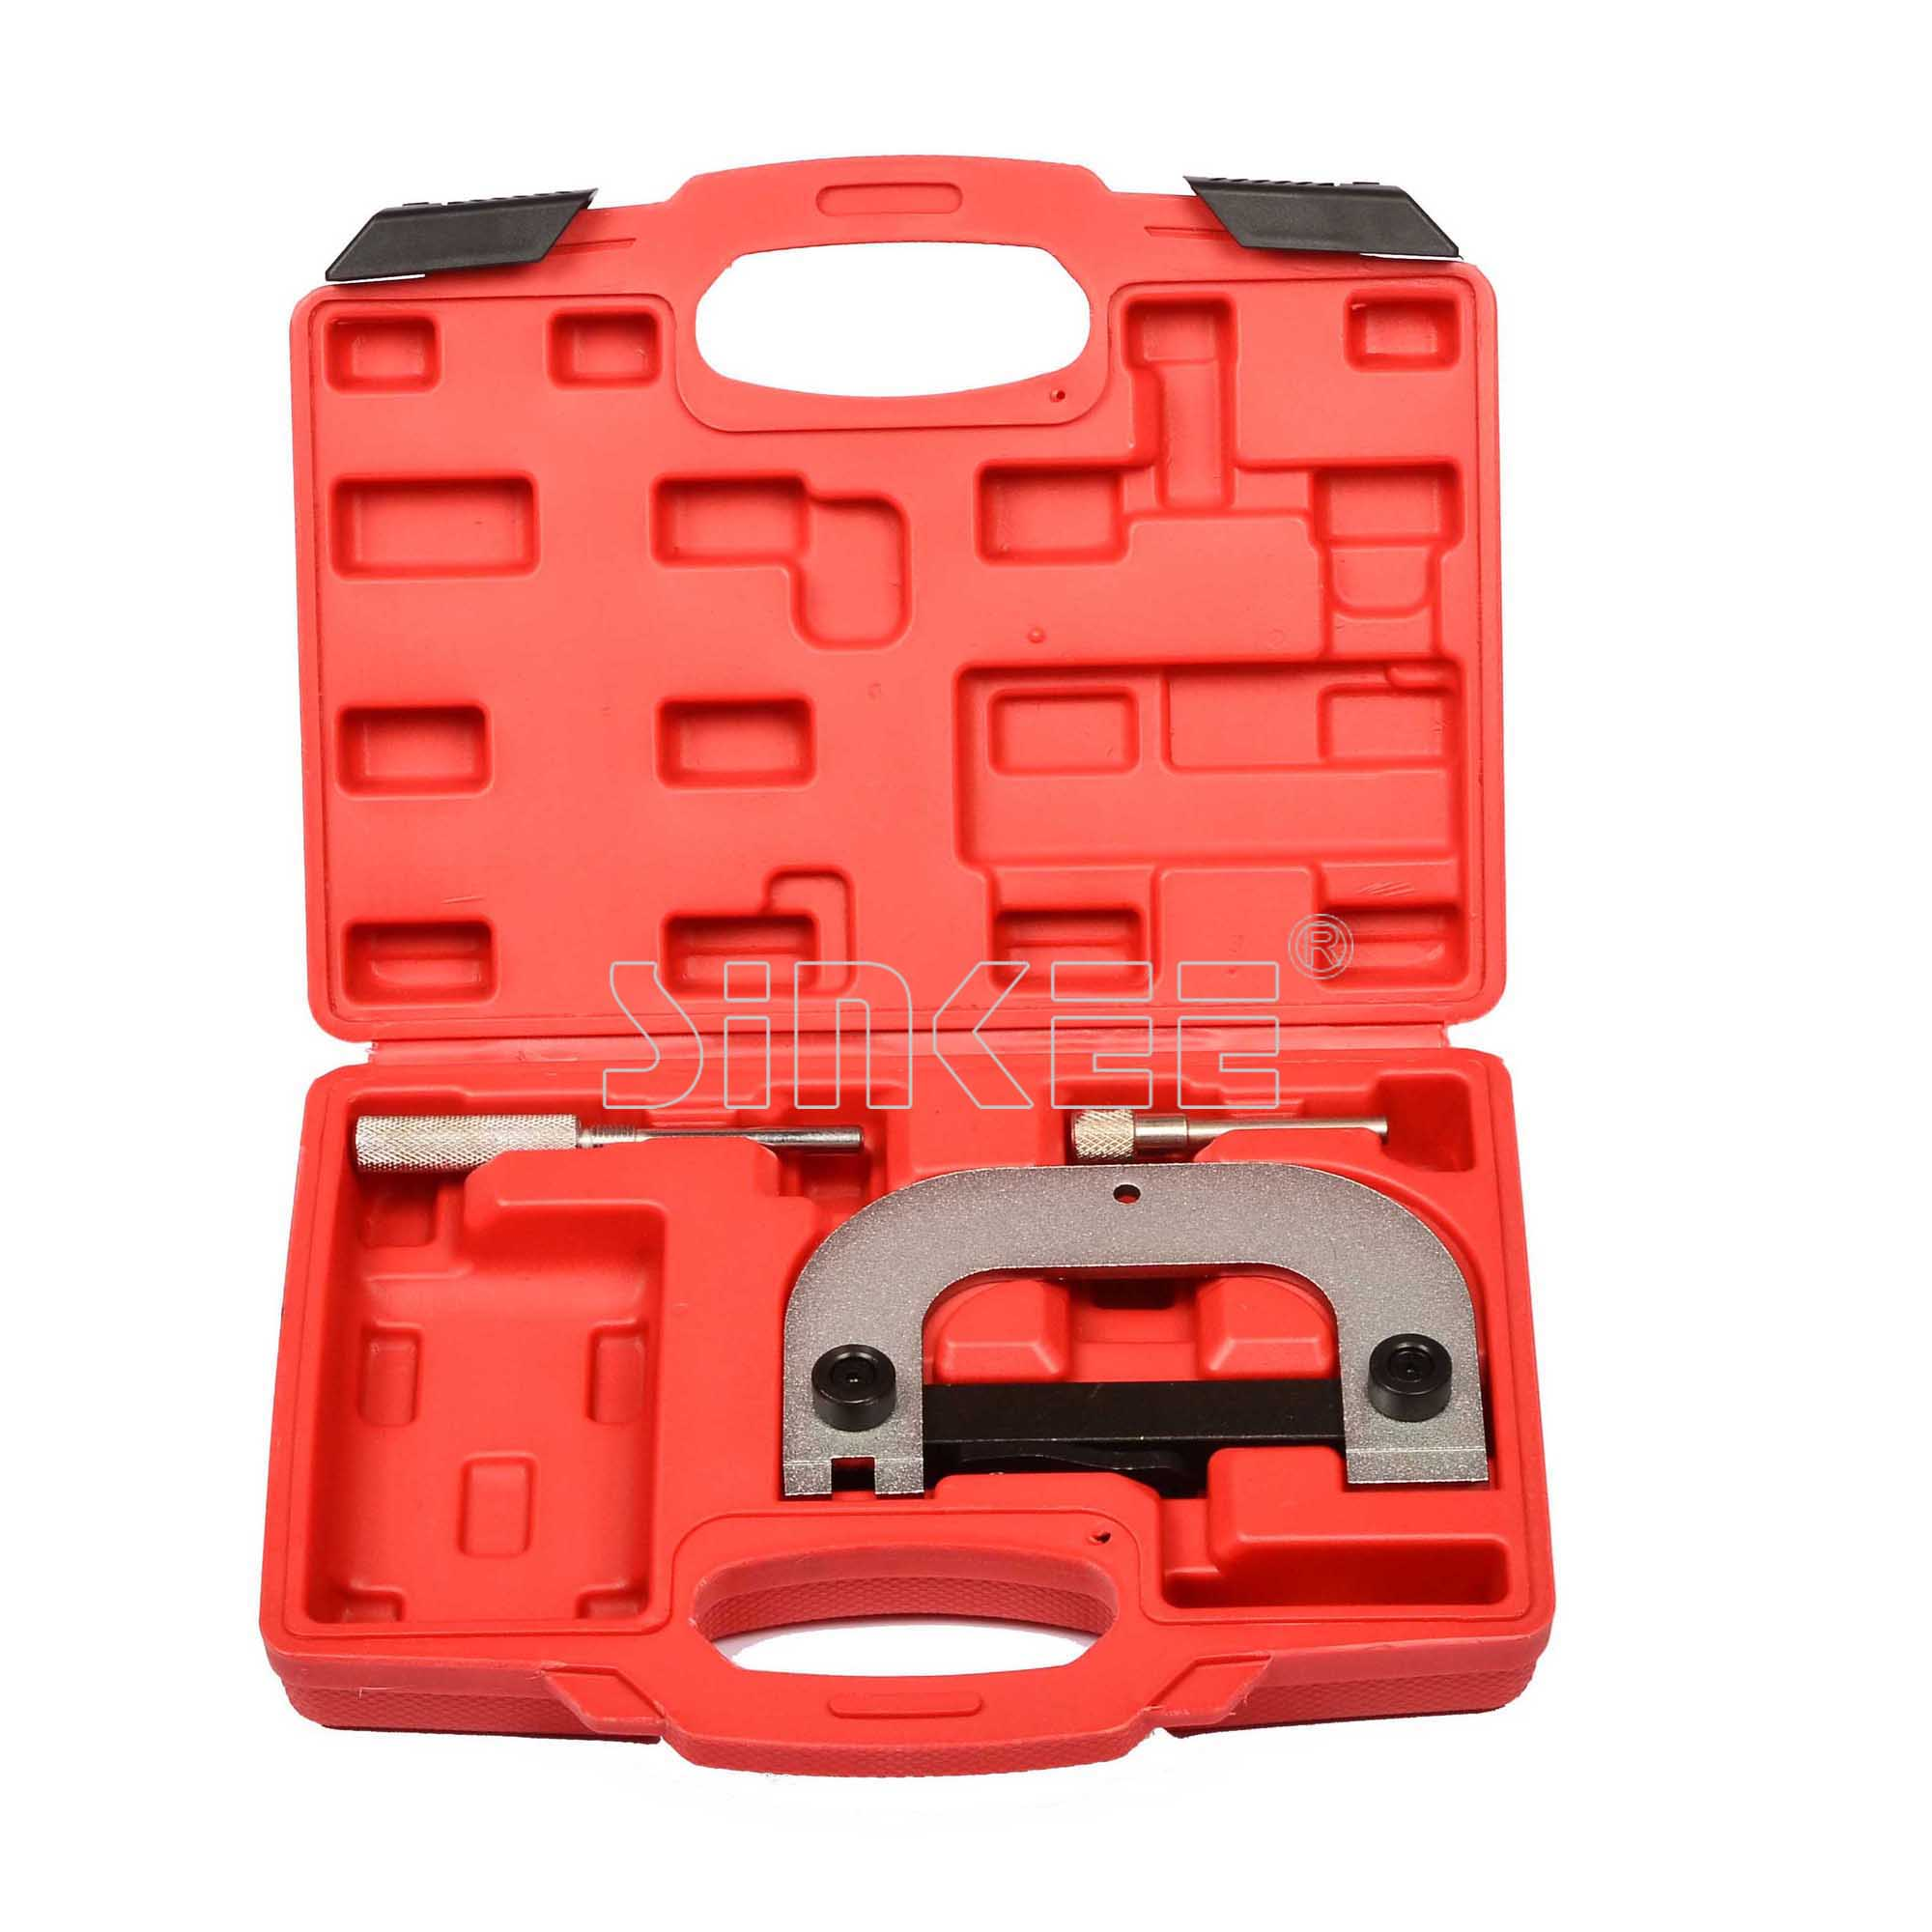 Engine Timing Tool Kit For Renault Vauxhall Petrol Engines 1.4 1.6 1.8 2.0 16v belt Driven PT1068 engine timing tool kit for renault vauxhall petrol engines 1 4 1 6 1 8 2 0 16v belt driven